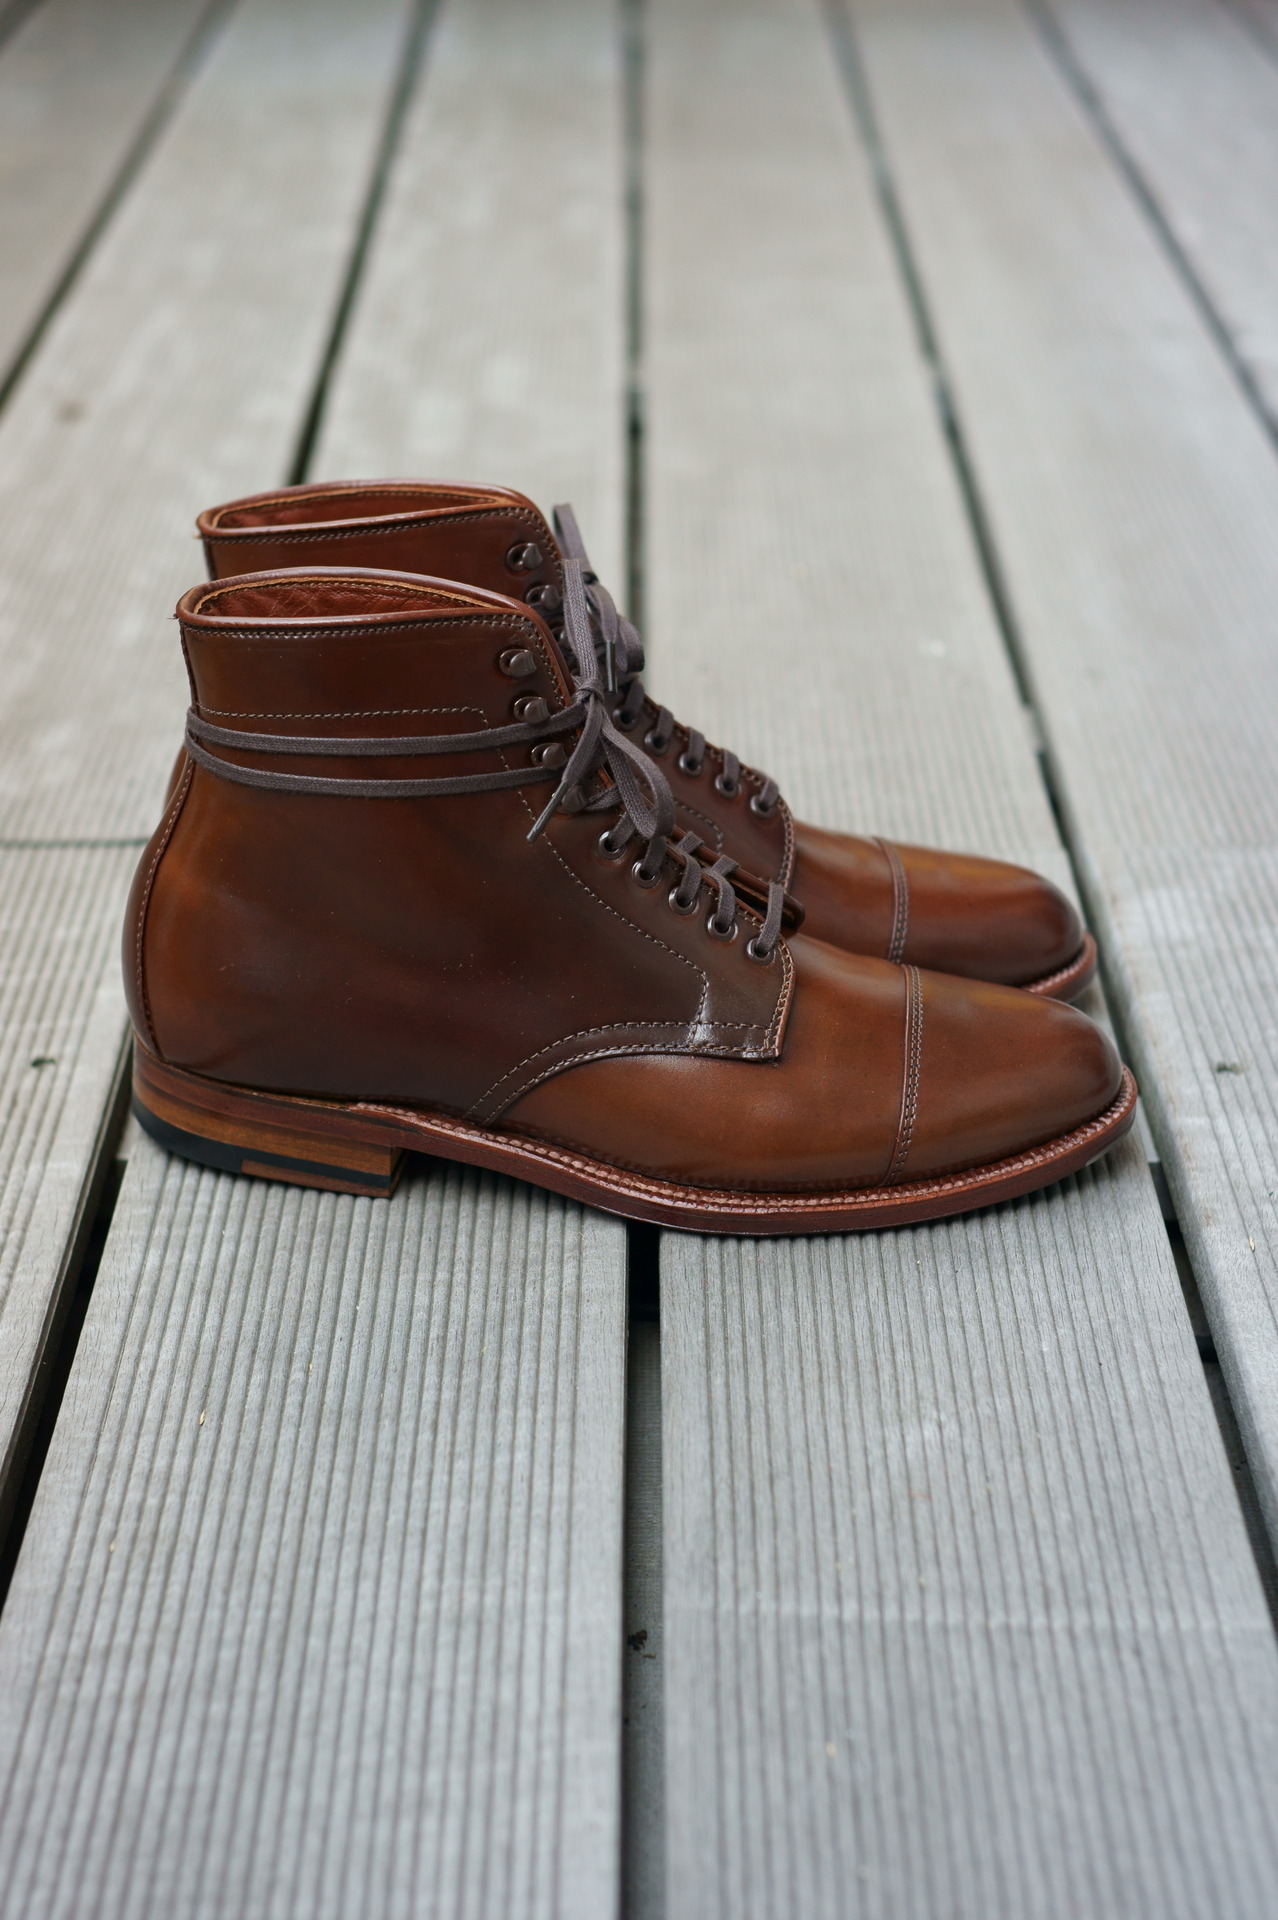 Nice boots. jaoben:  Thinking of Fall Alden Hunting Boot - Ravello Shell Cordovan, Flex-Welt, Waterloc Sole, Barrie Last